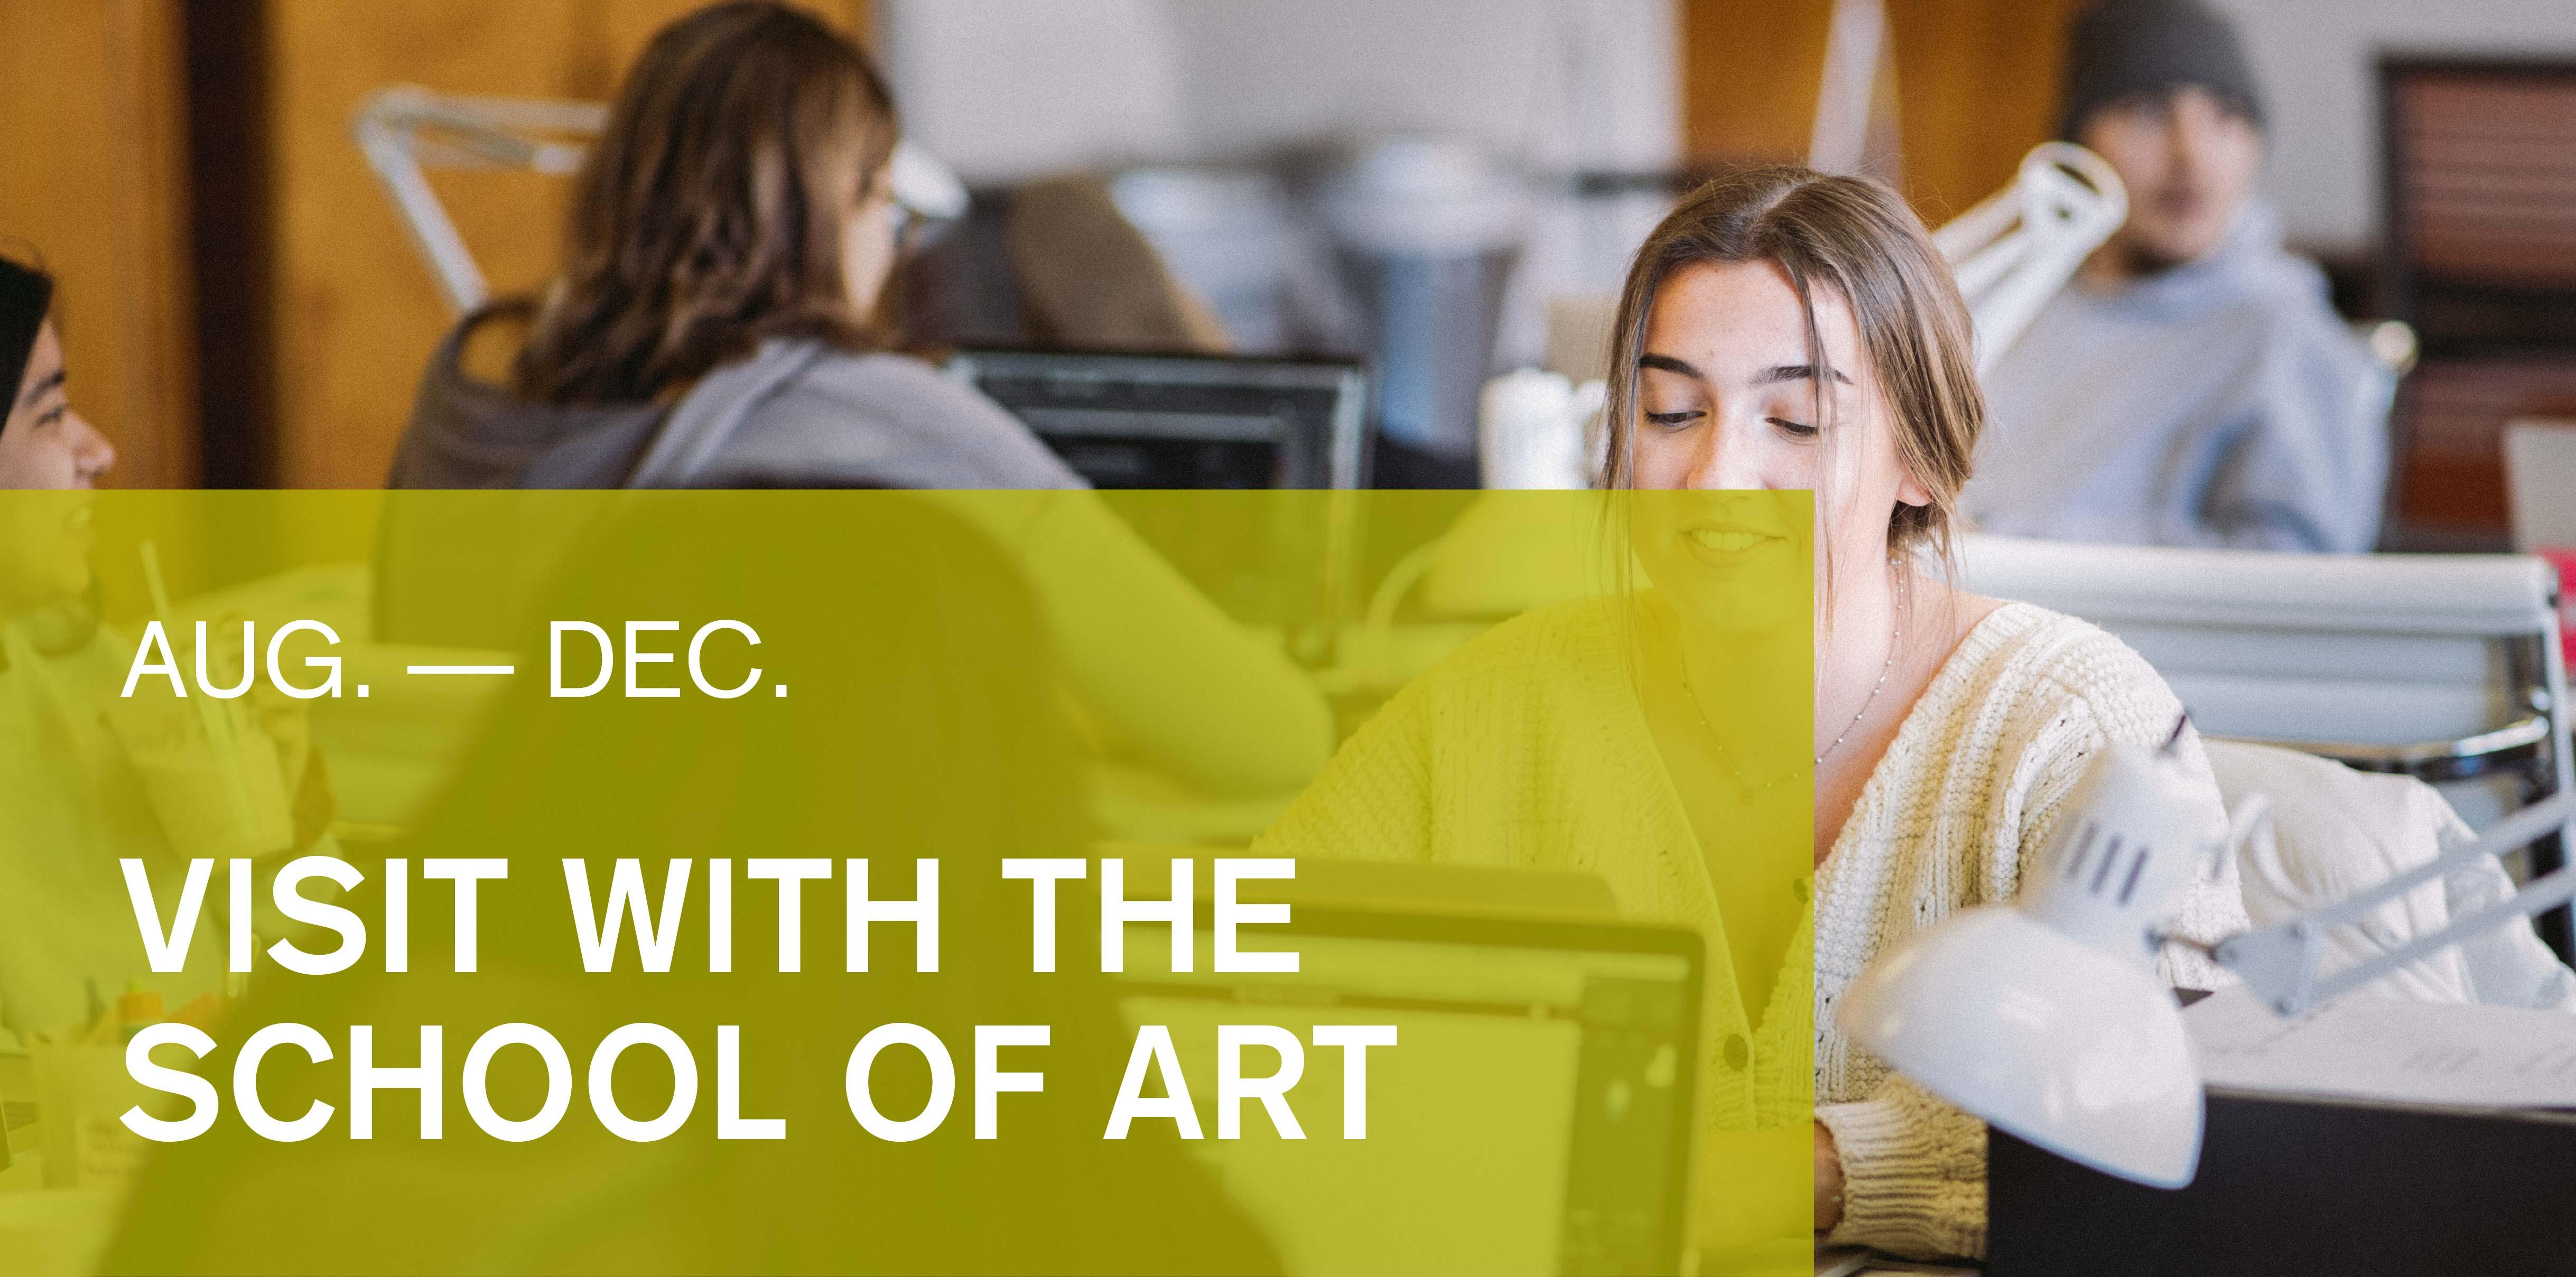 Visit with the School of Art from now through December.